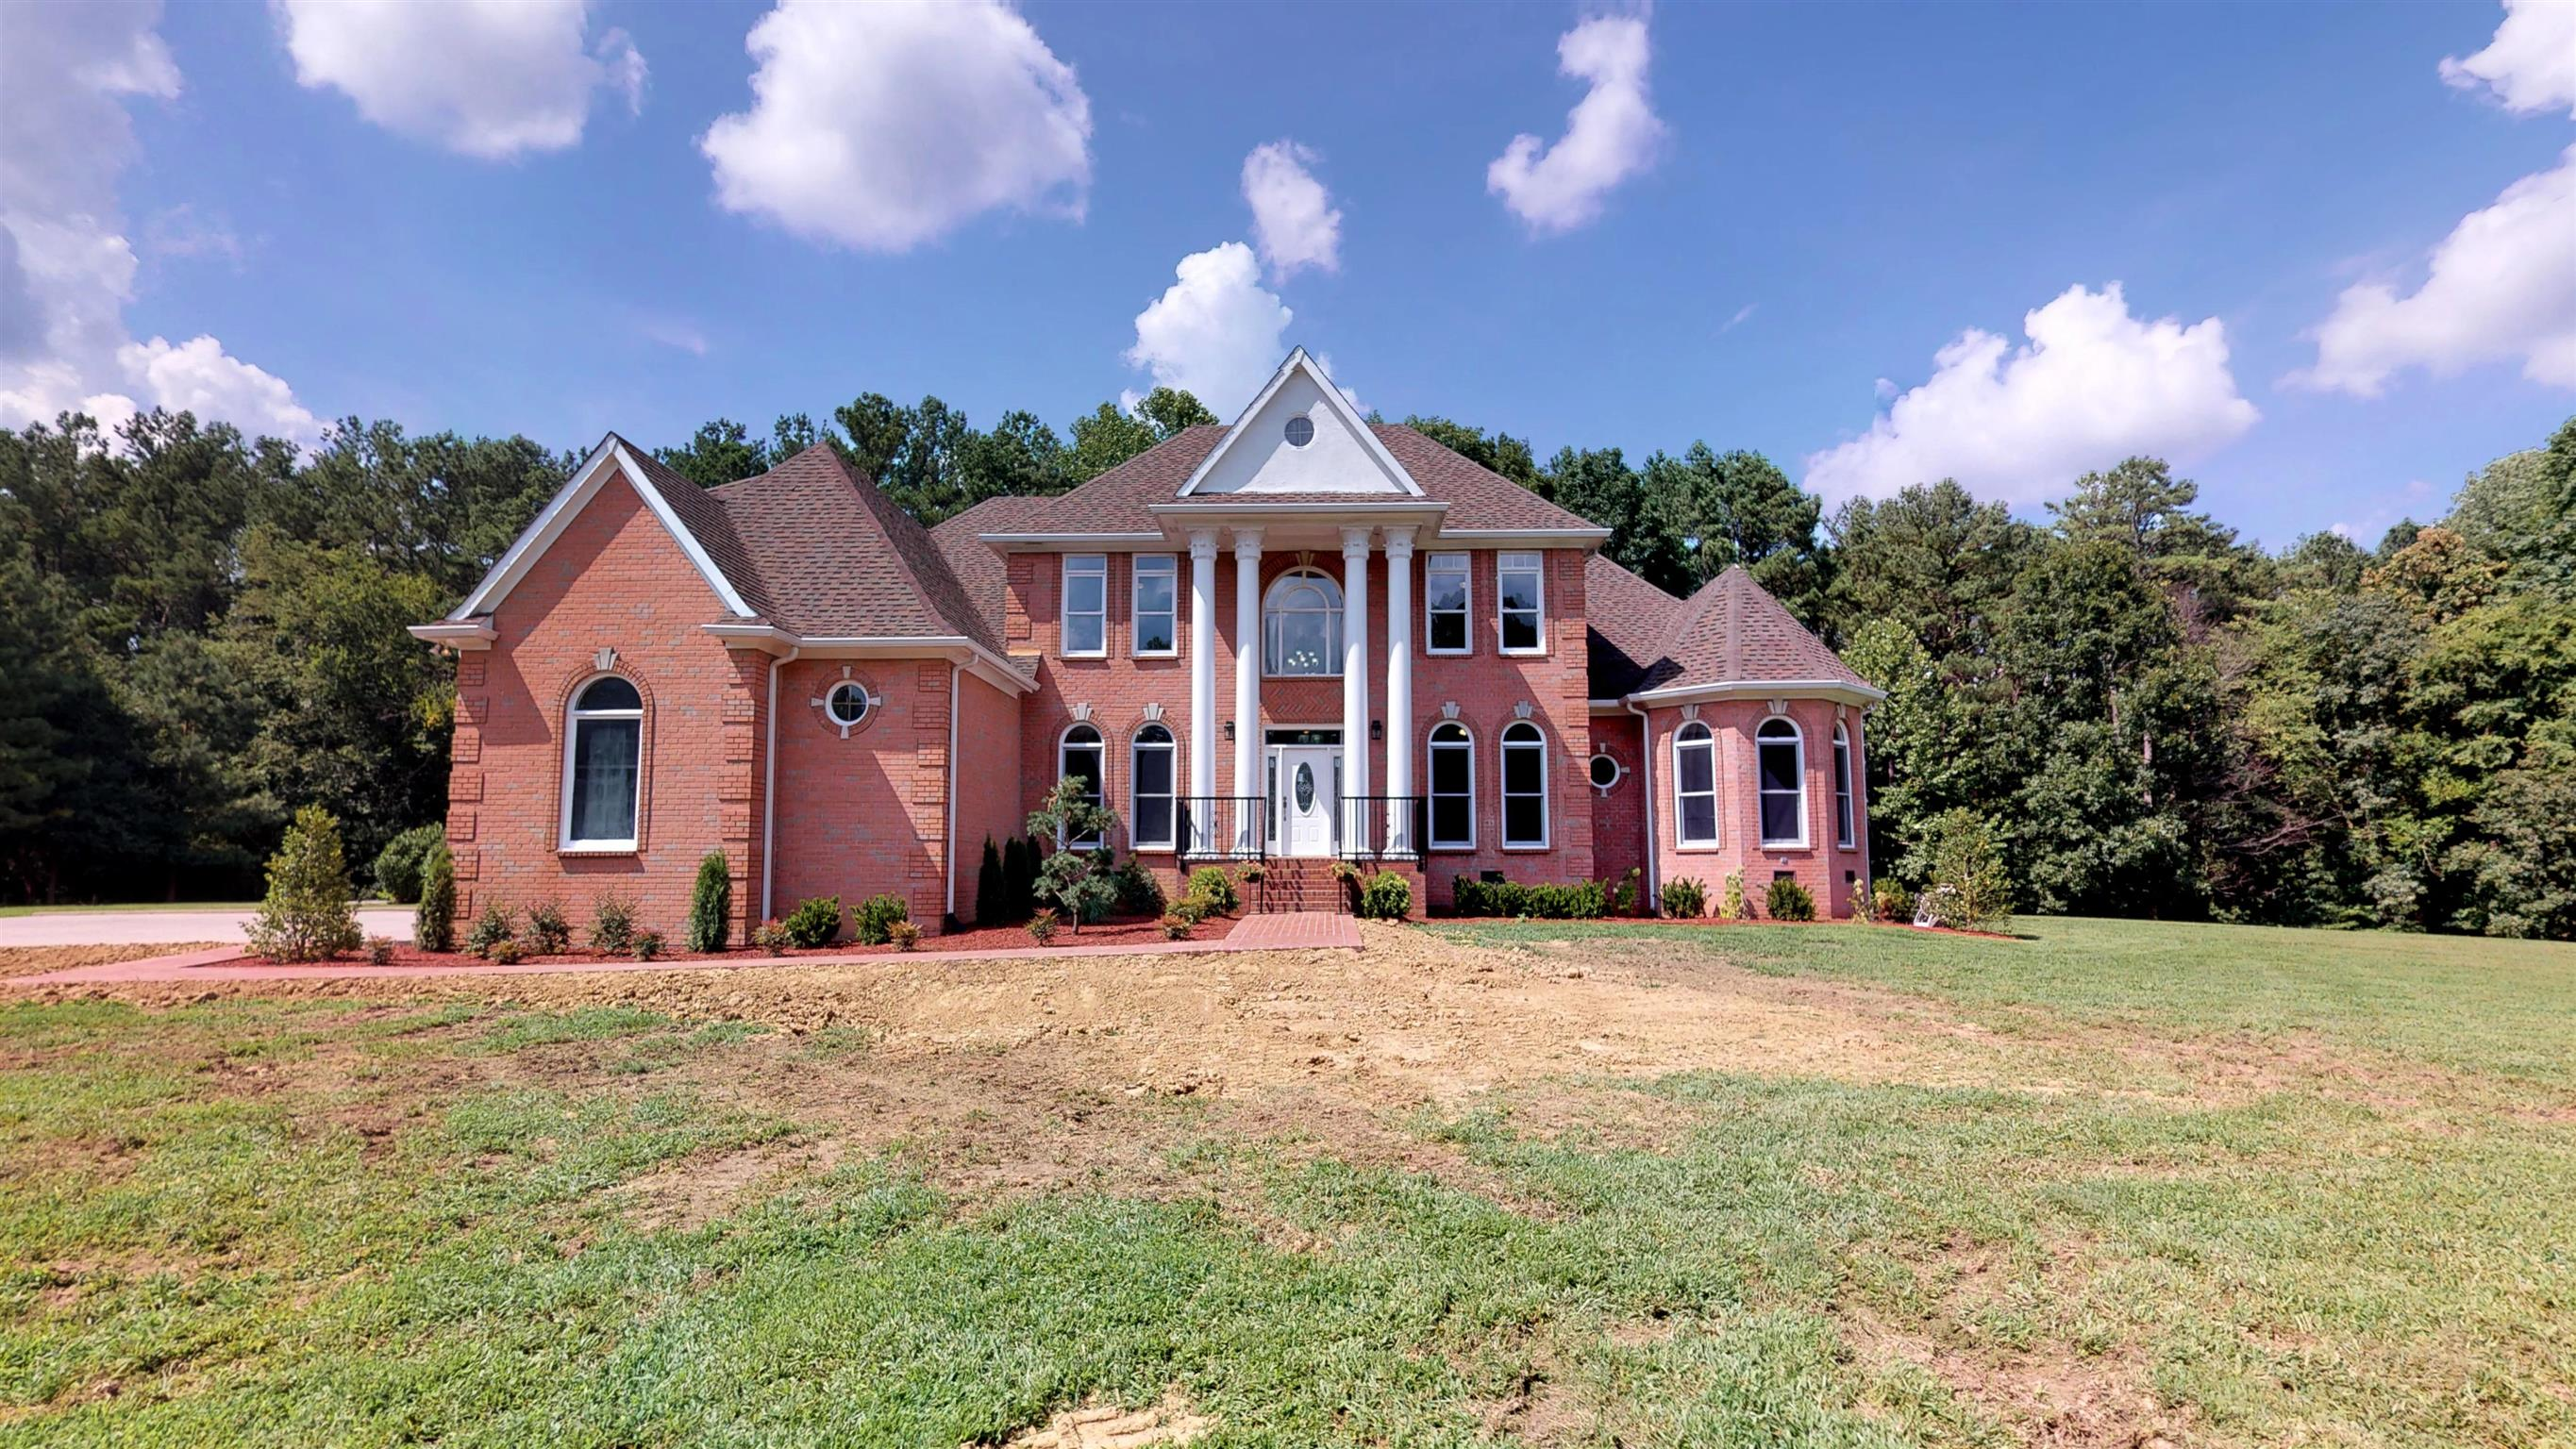 5494 Drye Run Rd, Joelton, TN 37080 - Joelton, TN real estate listing